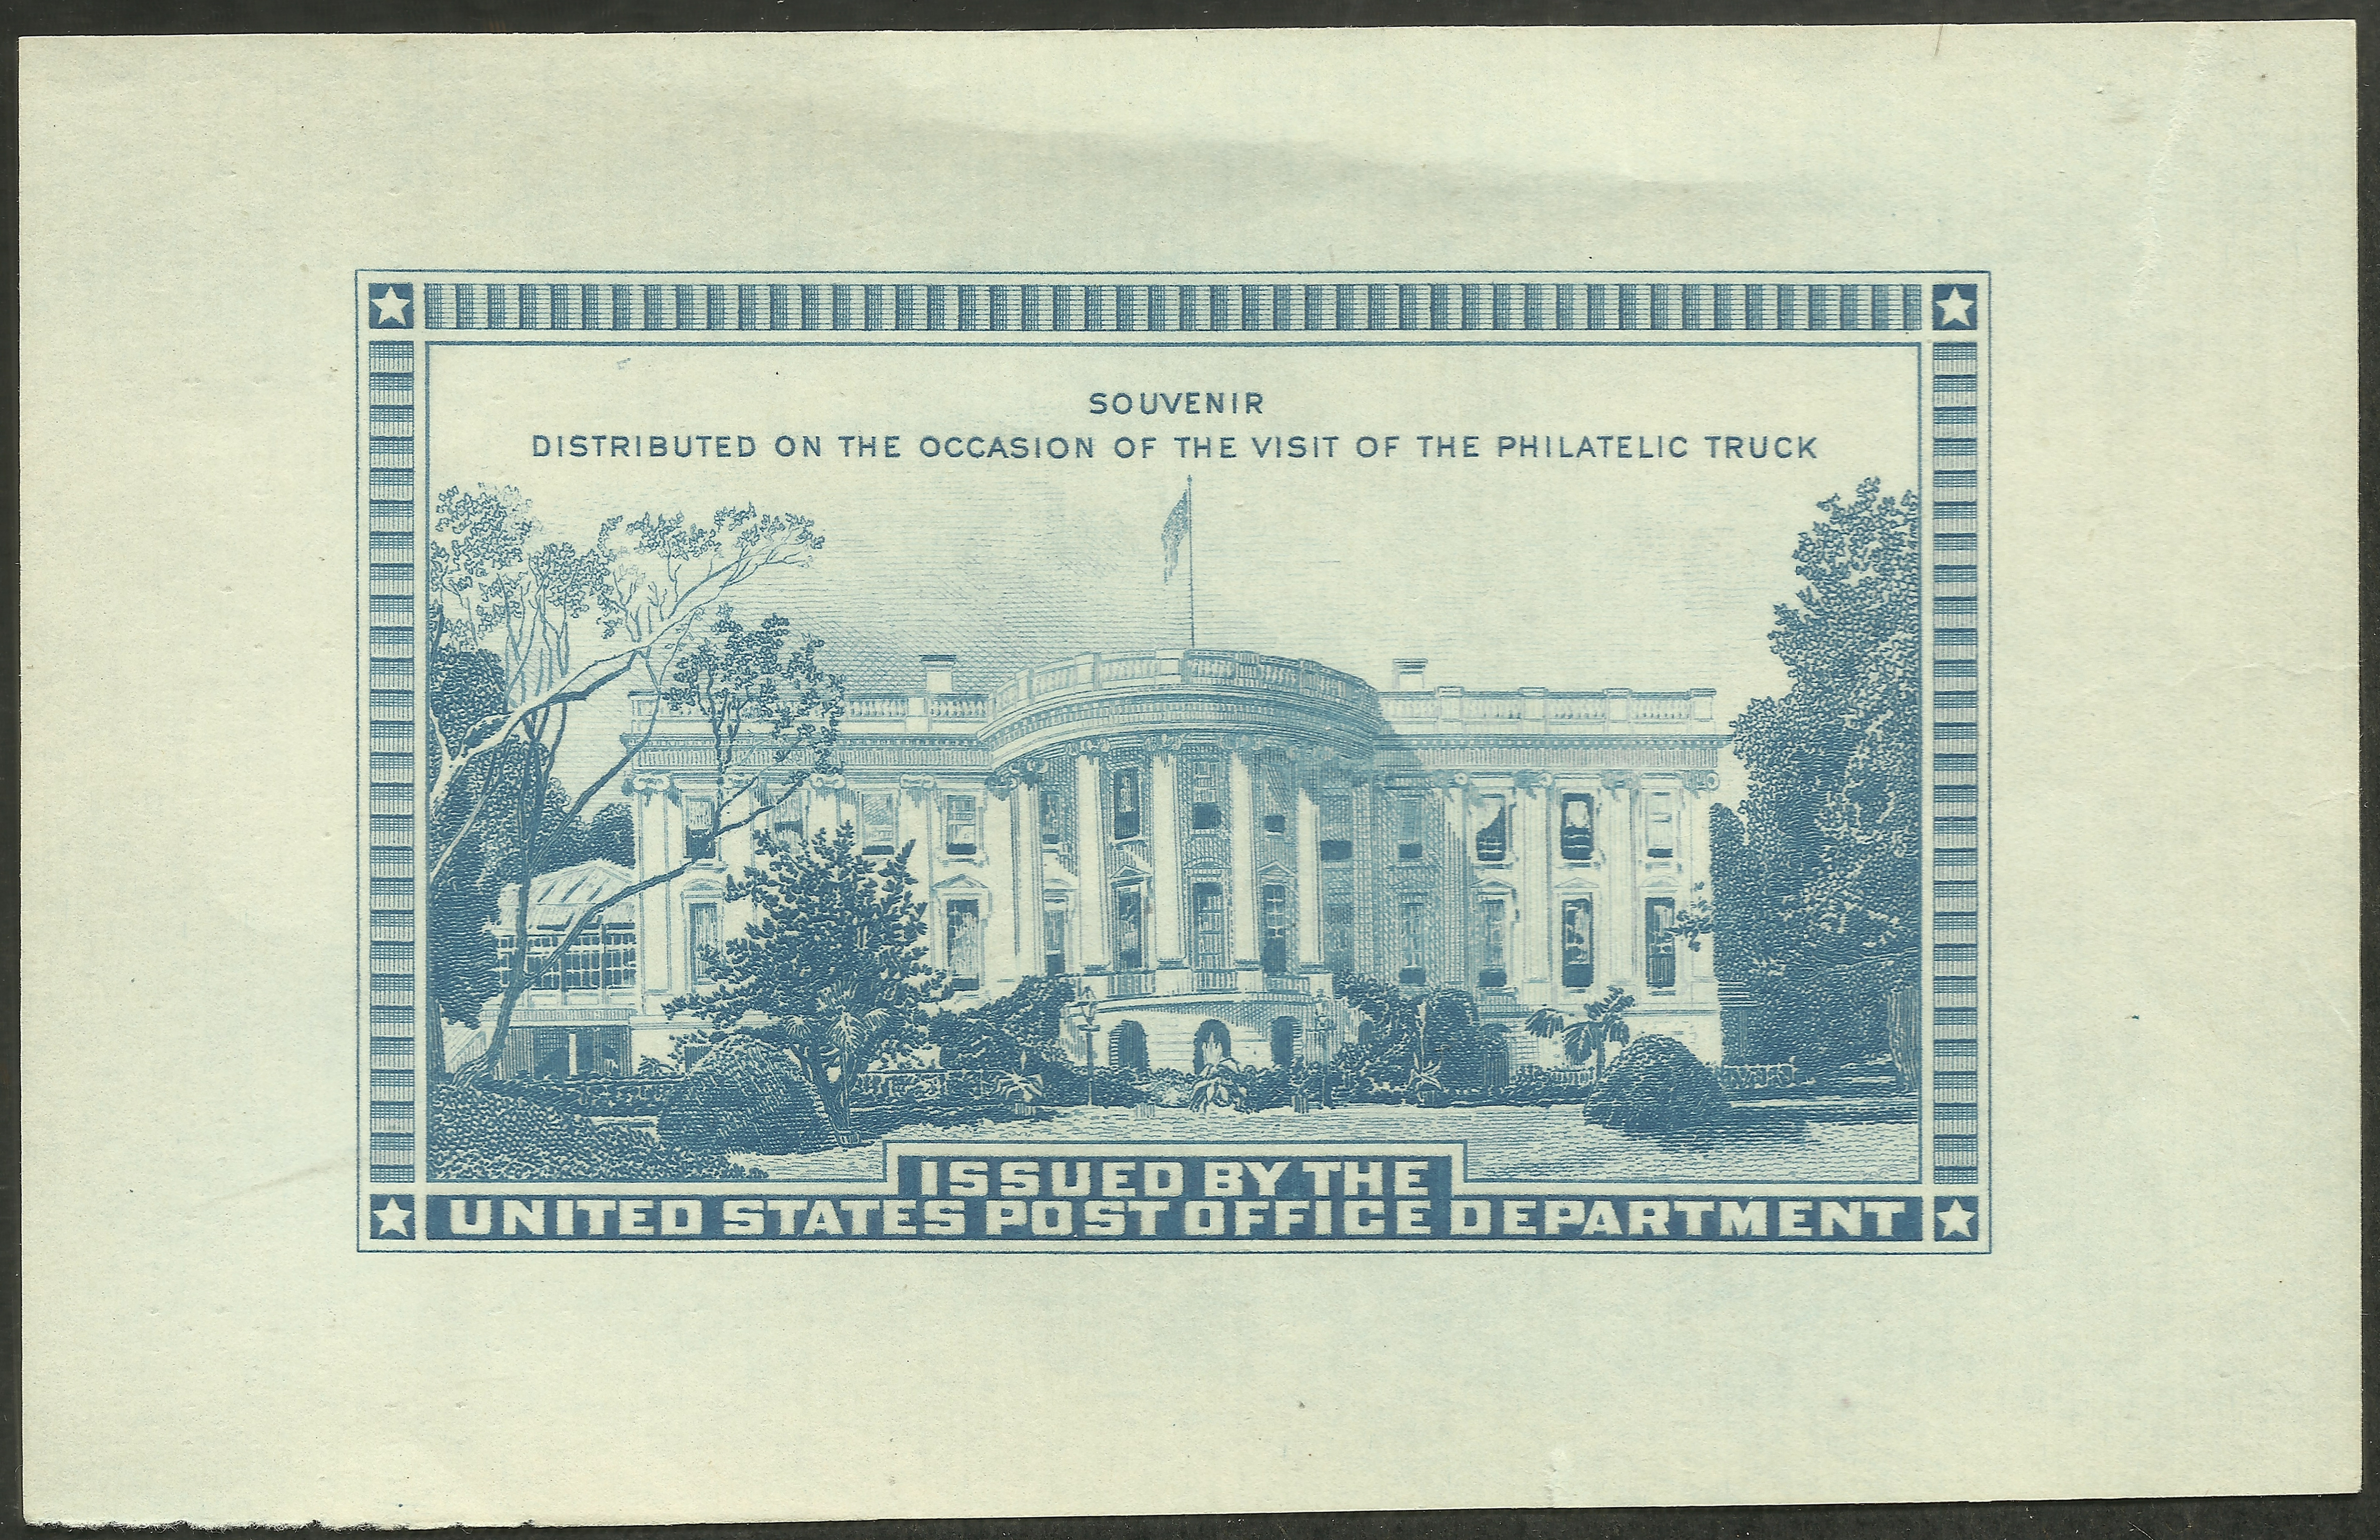 Although this souvenir sheet was printed by the Bureau of Engraving and Printing in Washington, D.C., and distributed by the United States Post Office Department to people visiting its Philatelic Truck as it crisscrossed the nation from May 1939 to December 1941, it is still considered a cinderella due to the fact that it wasn't intended to postal purposes.